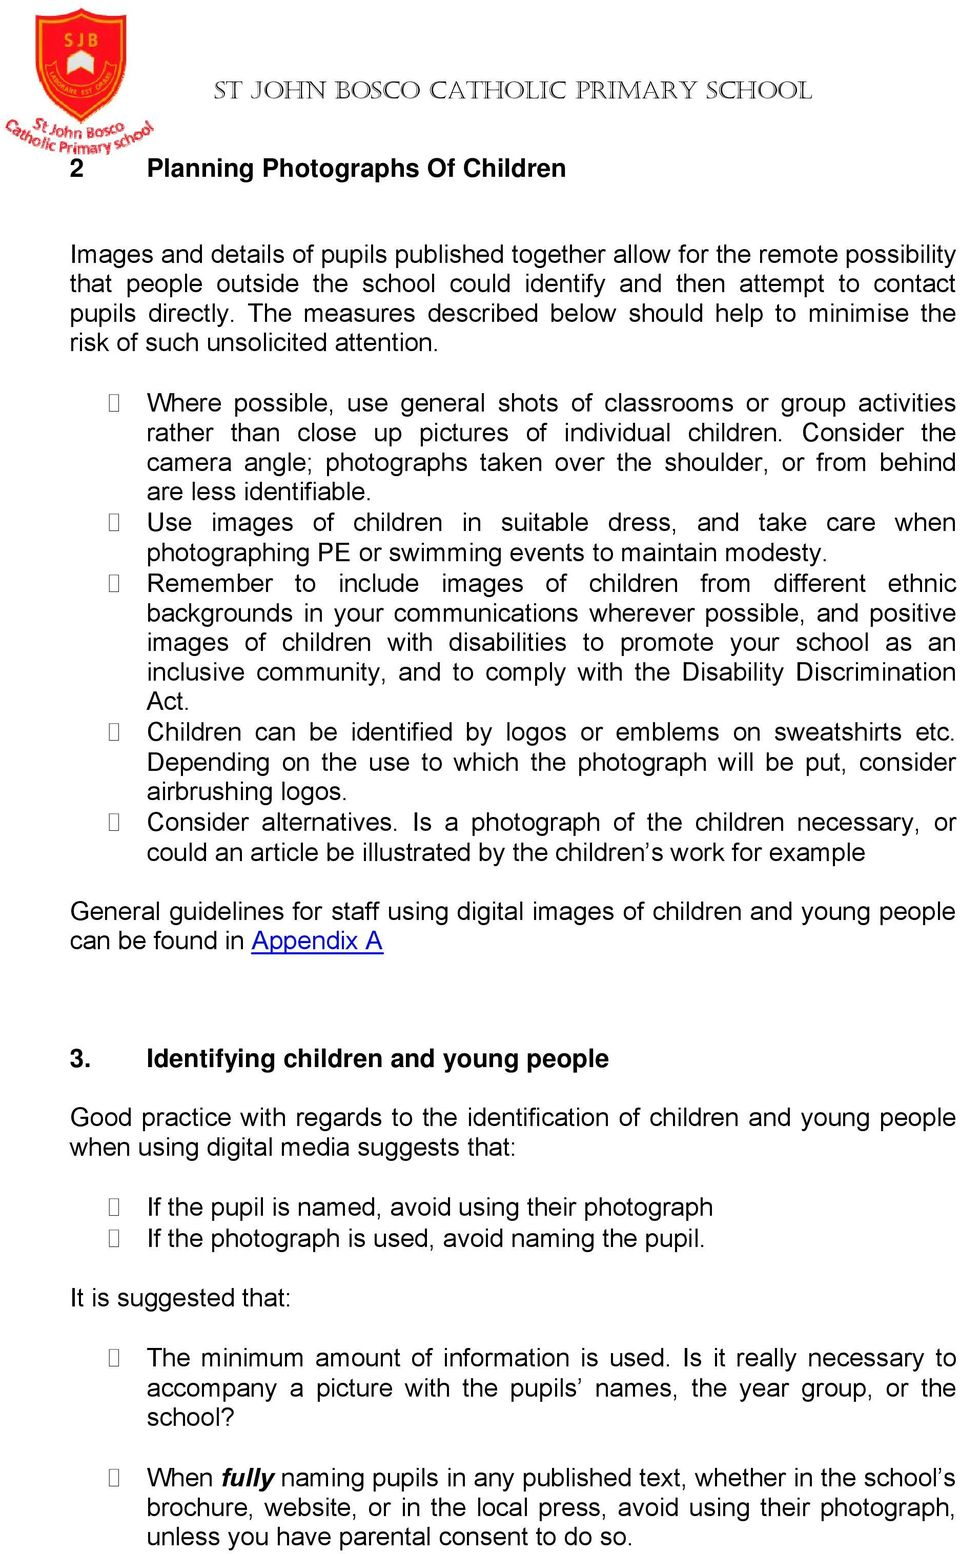 Where possible, use general shots of classrooms or group activities rather than close up pictures of individual children.